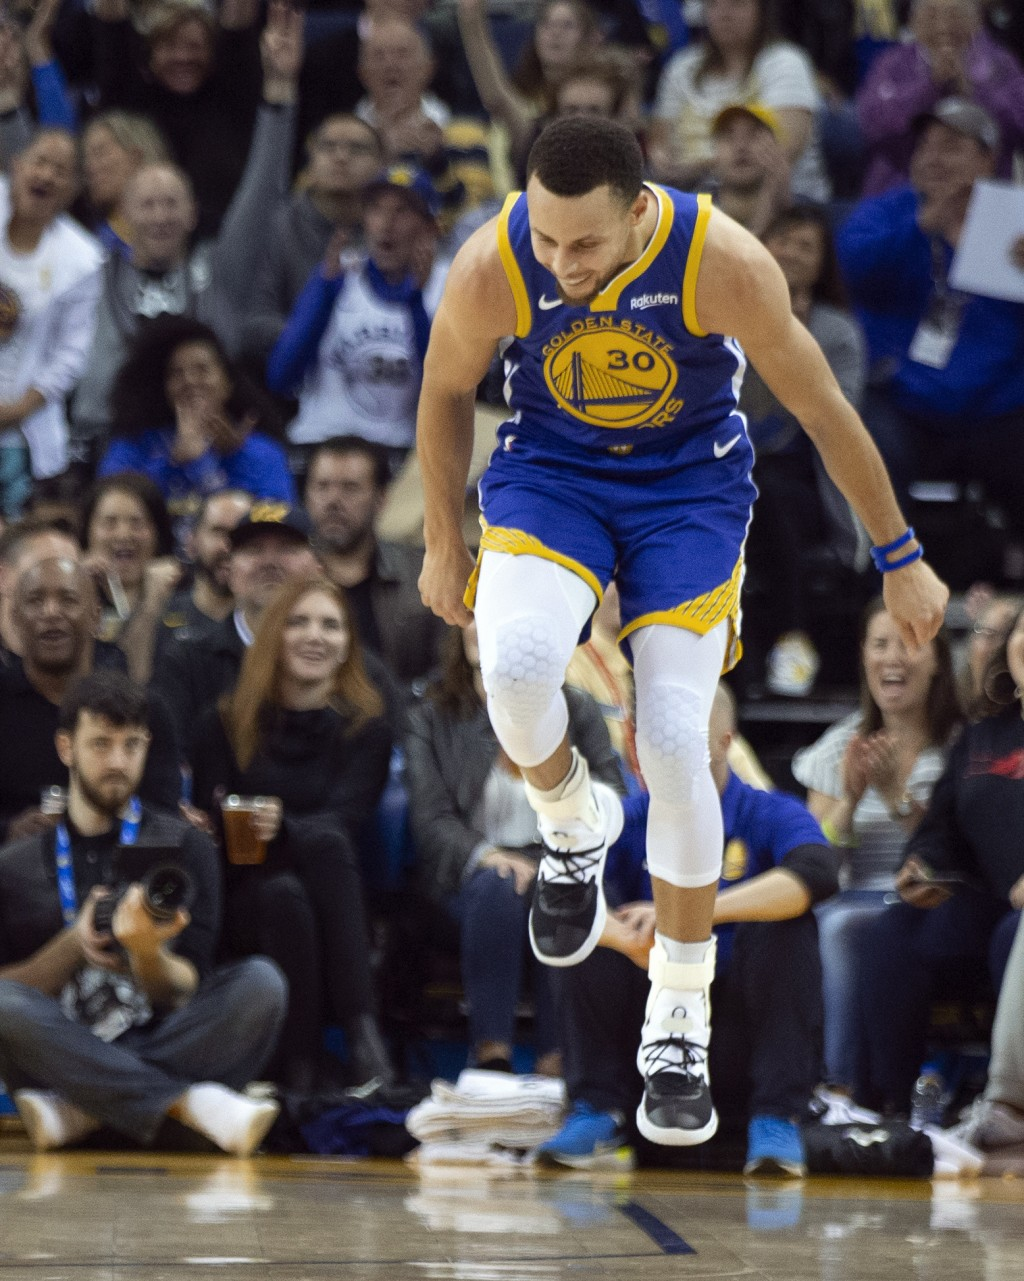 Golden State Warriors' Stephen Curry celebrates a 3-point basket against the Dallas Mavericks during the second quarter of an NBA basketball game Satu